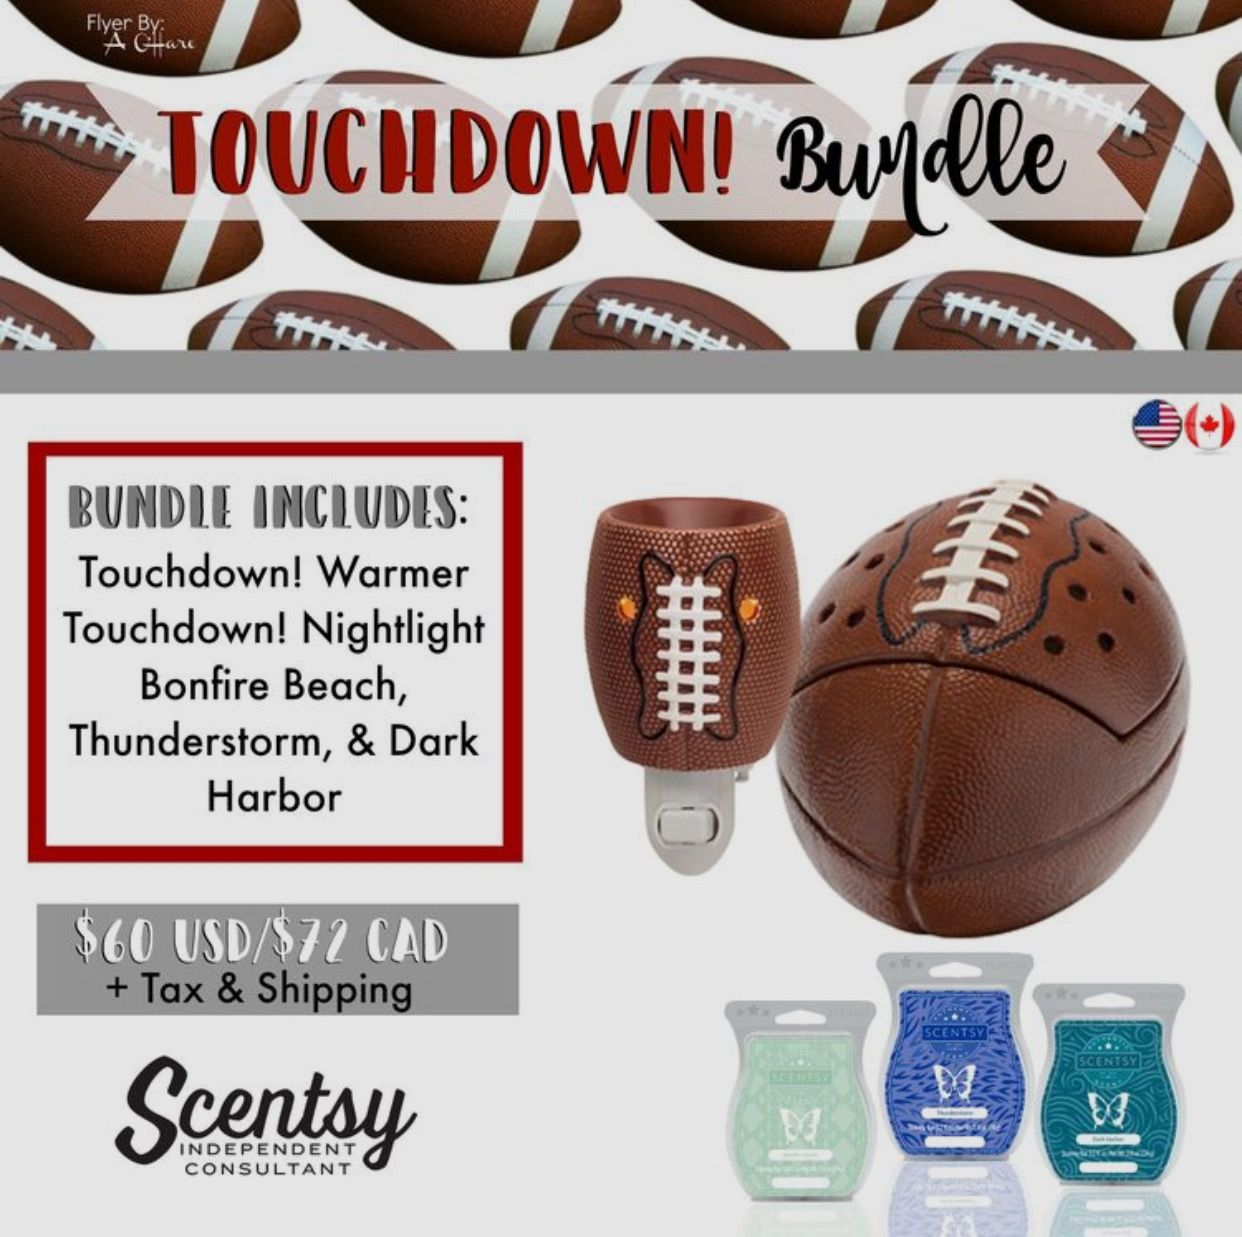 Explorescentswithjess.scentsy.us